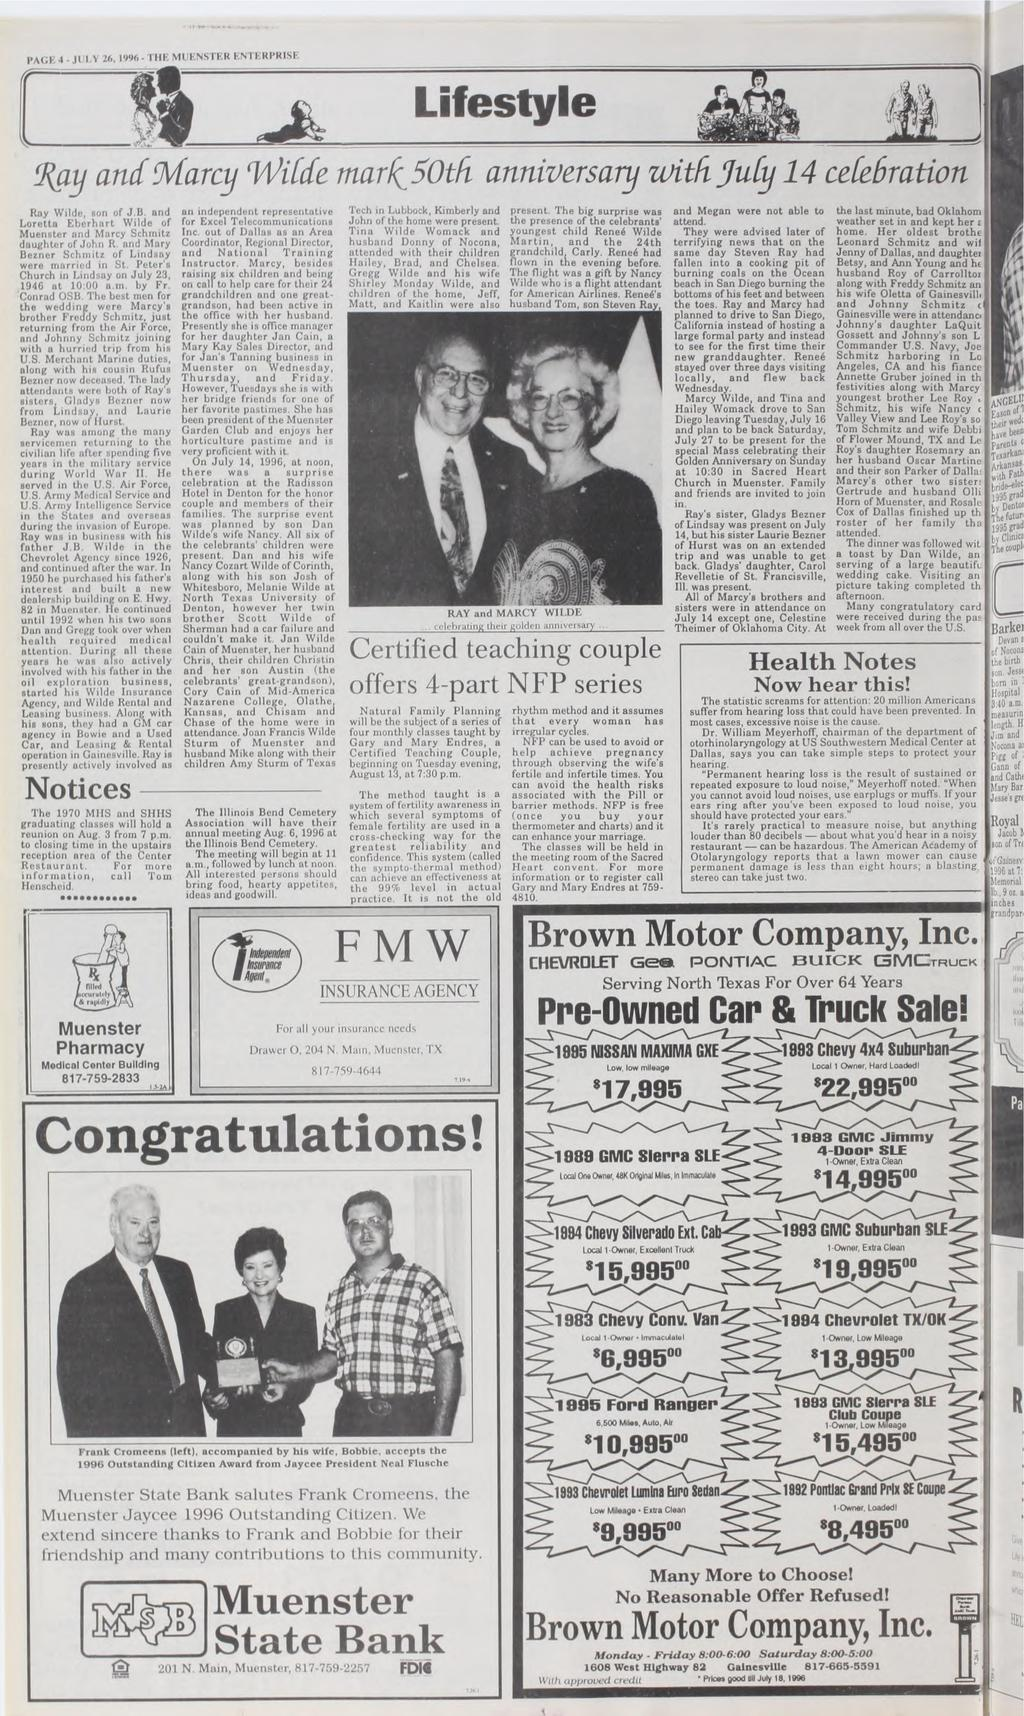 I PAGI 4 1 26,1996- THE MUENSTER ENTERPRISE Lifestyle Ray anc Marcy Wilde mark5oth anniversary with Yu& 14 celebration Ray Wilde, son of J.B.